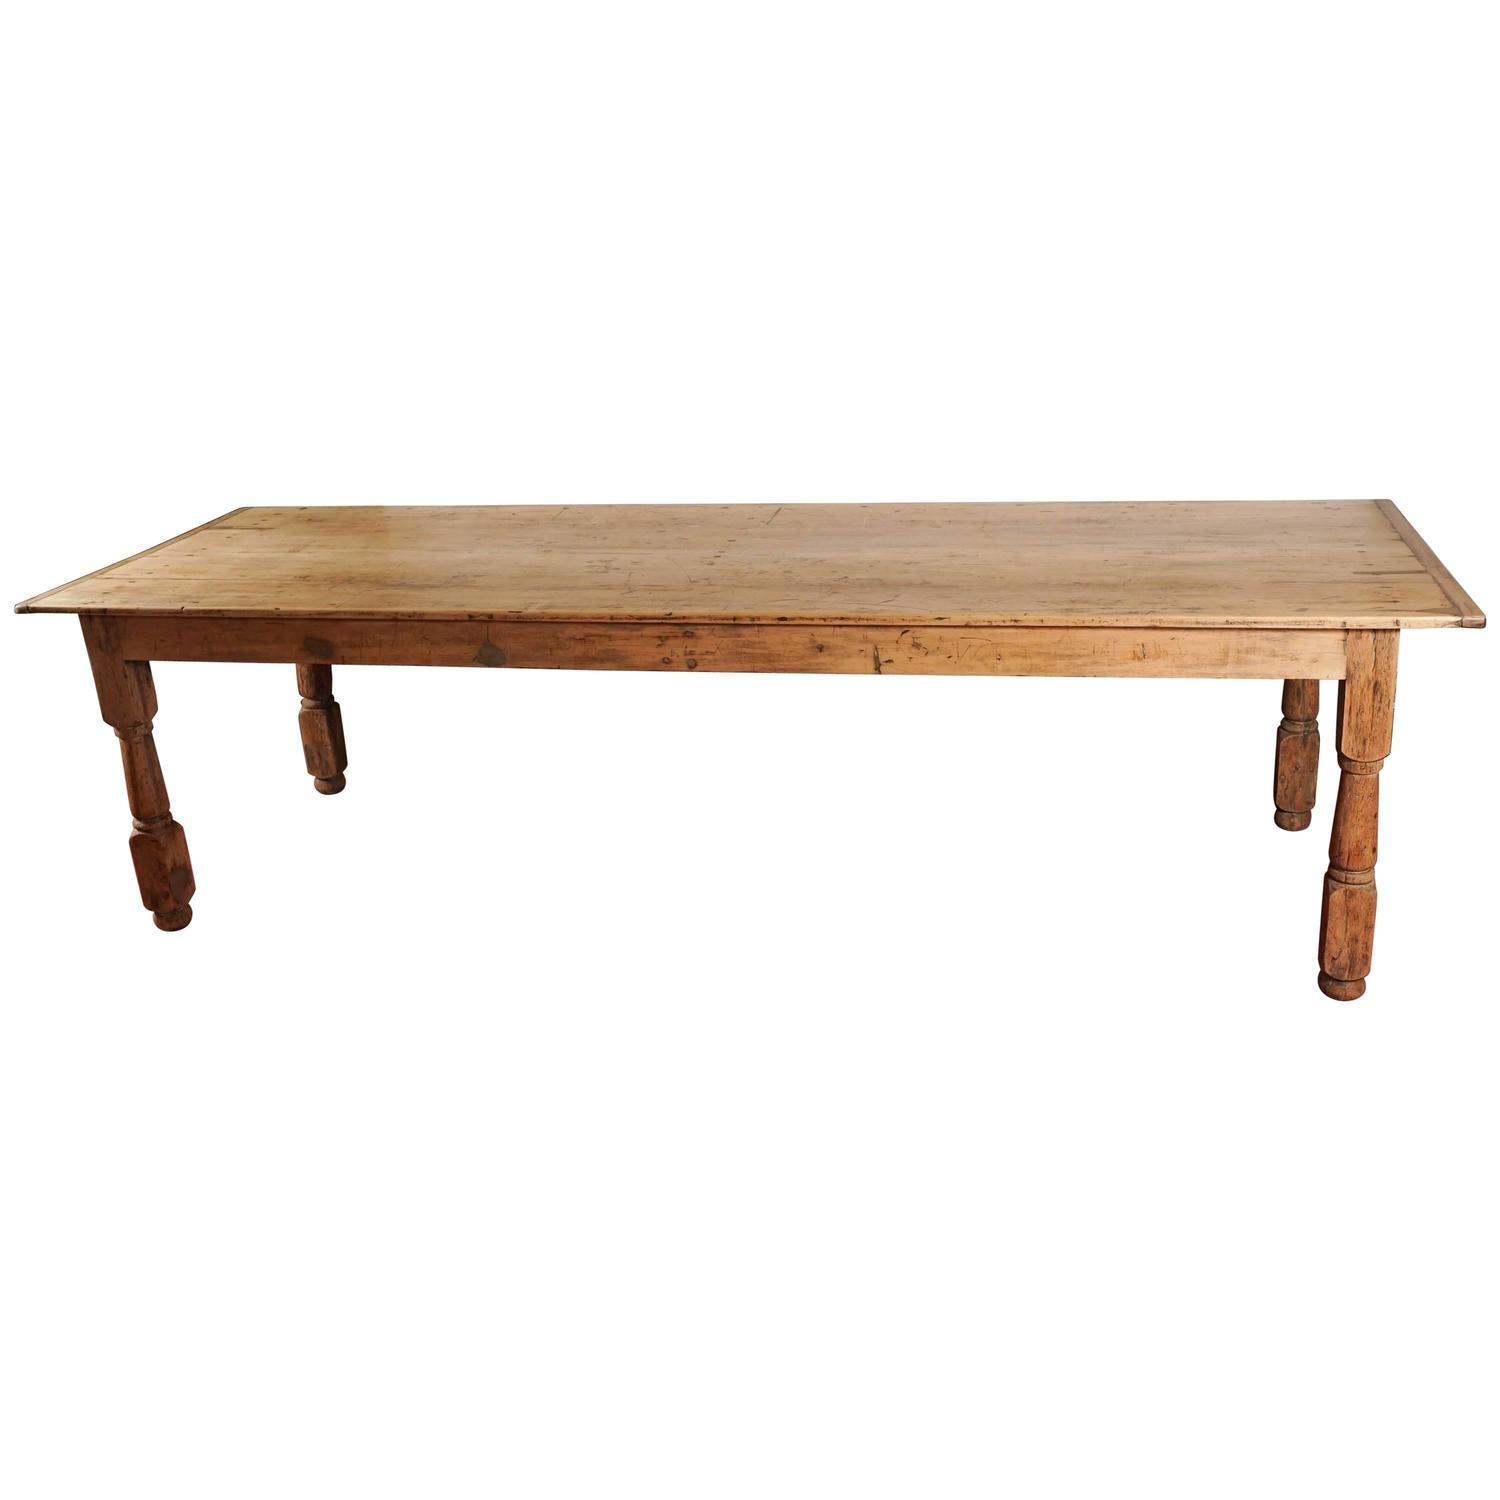 Rustic Farm Refectory Table At 1stdibs